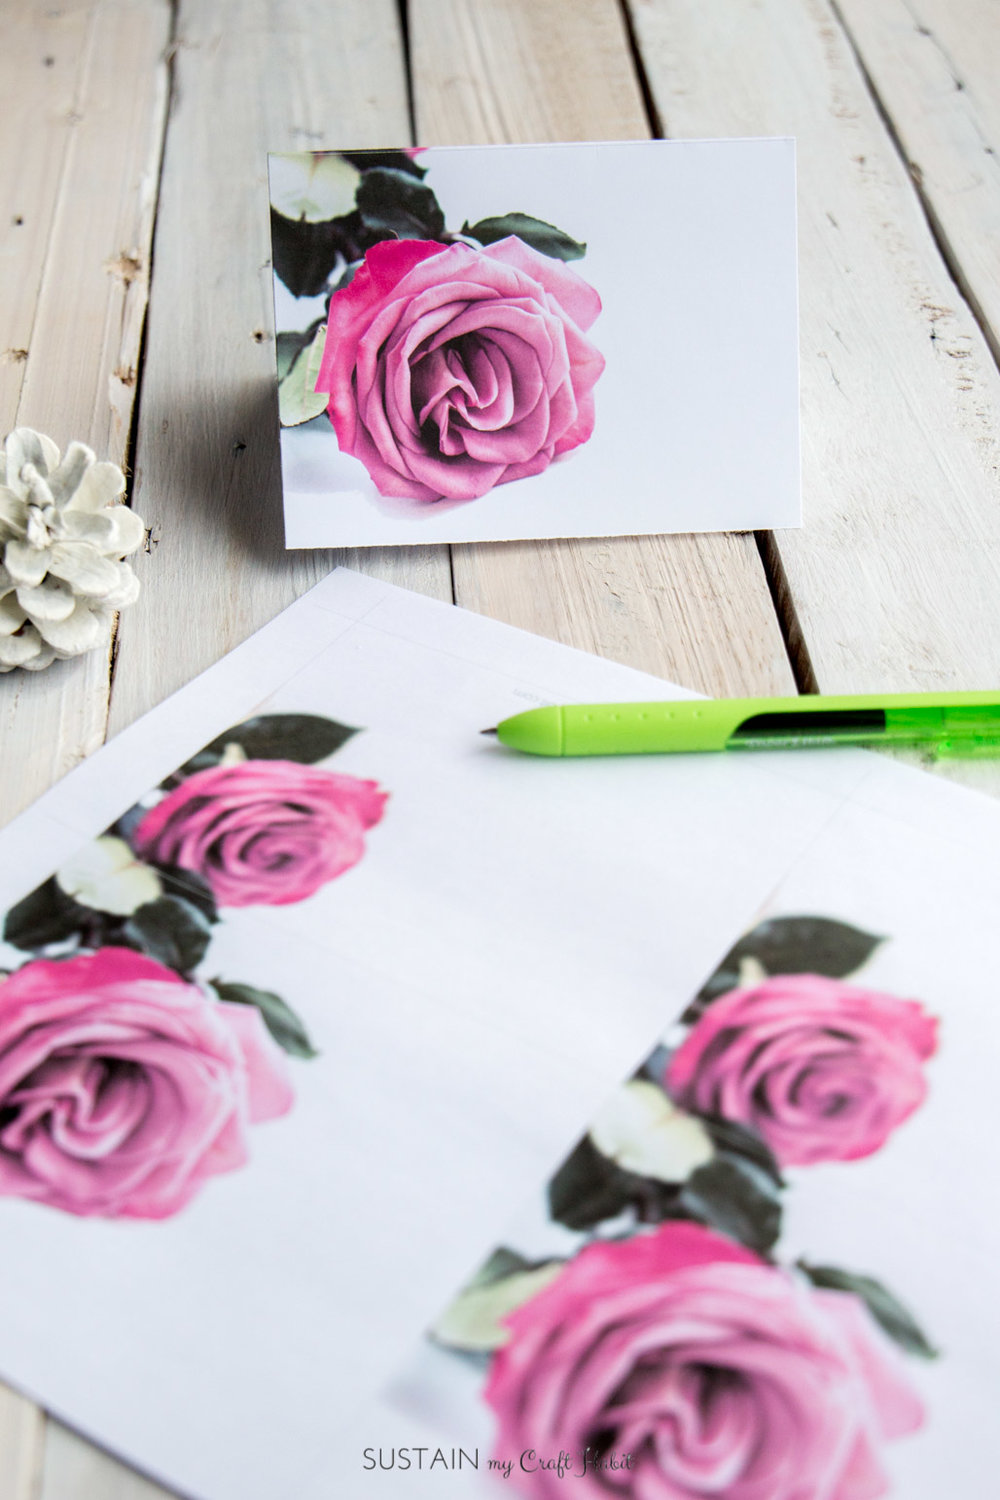 Pink rose free printable greeting card. Perfect for birthdays, Valentines, weddings or any special ocassion.